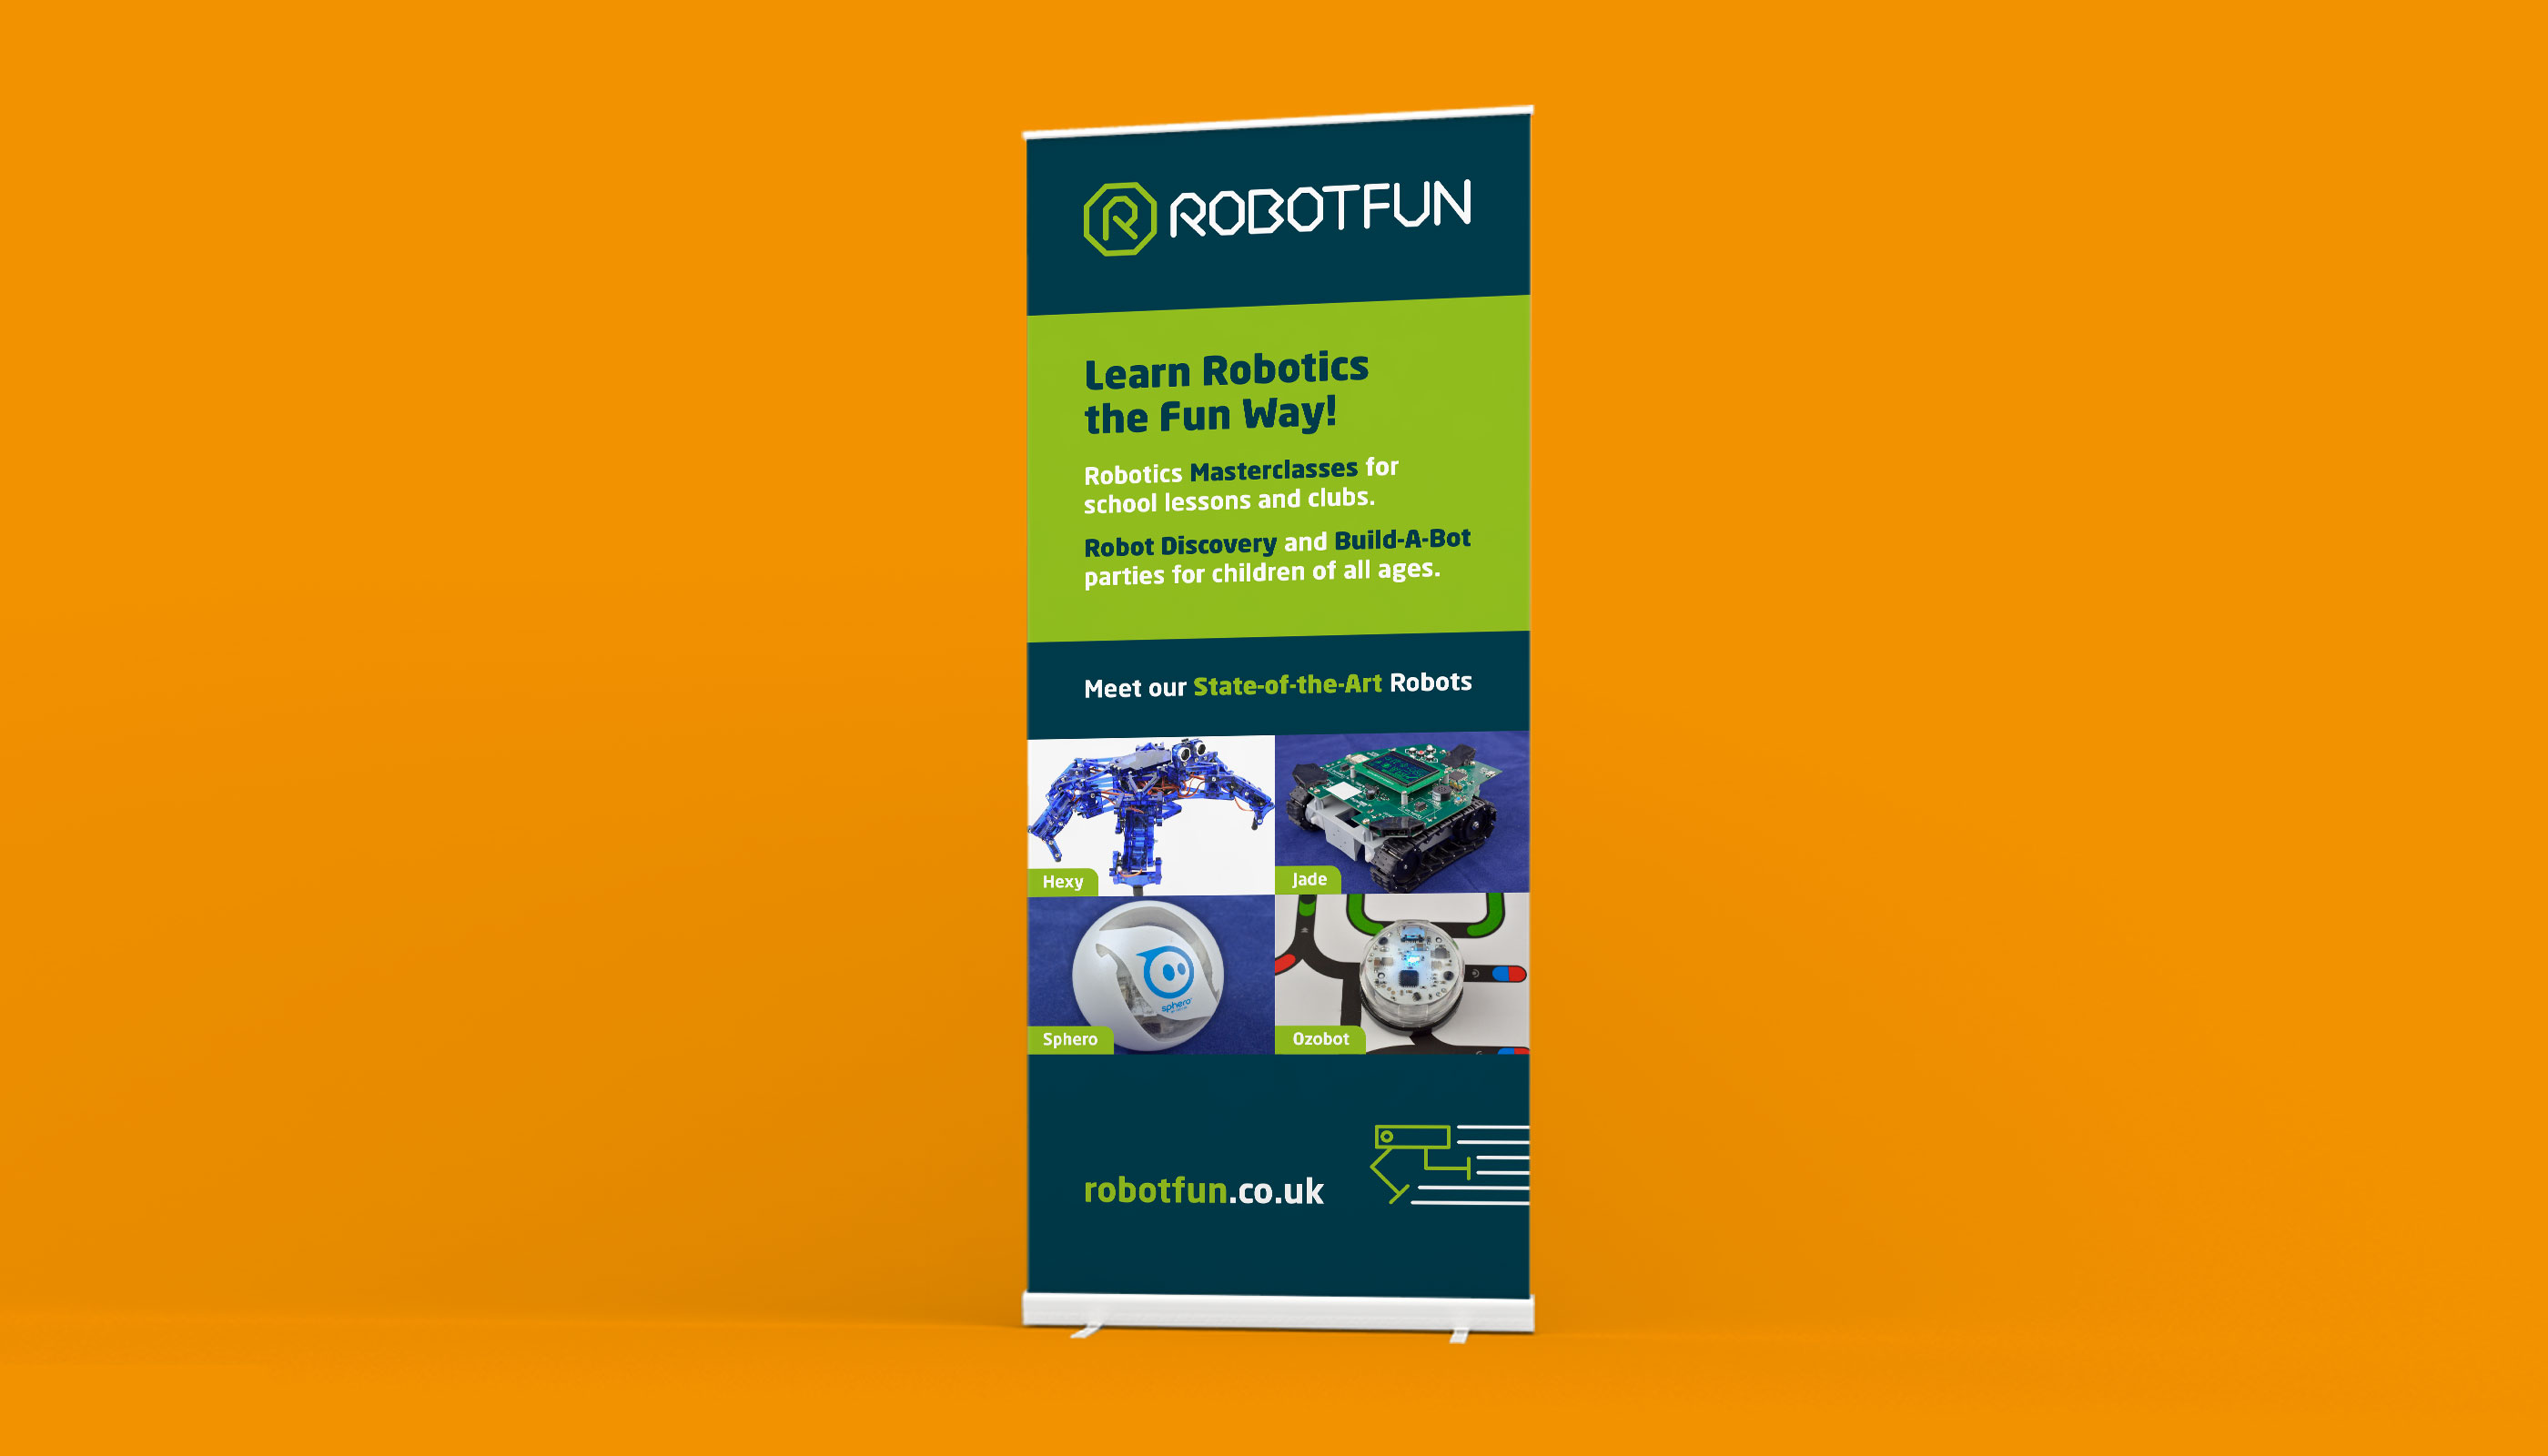 Roller banner design and print for RobotFun in Ipswich, Suffolk.